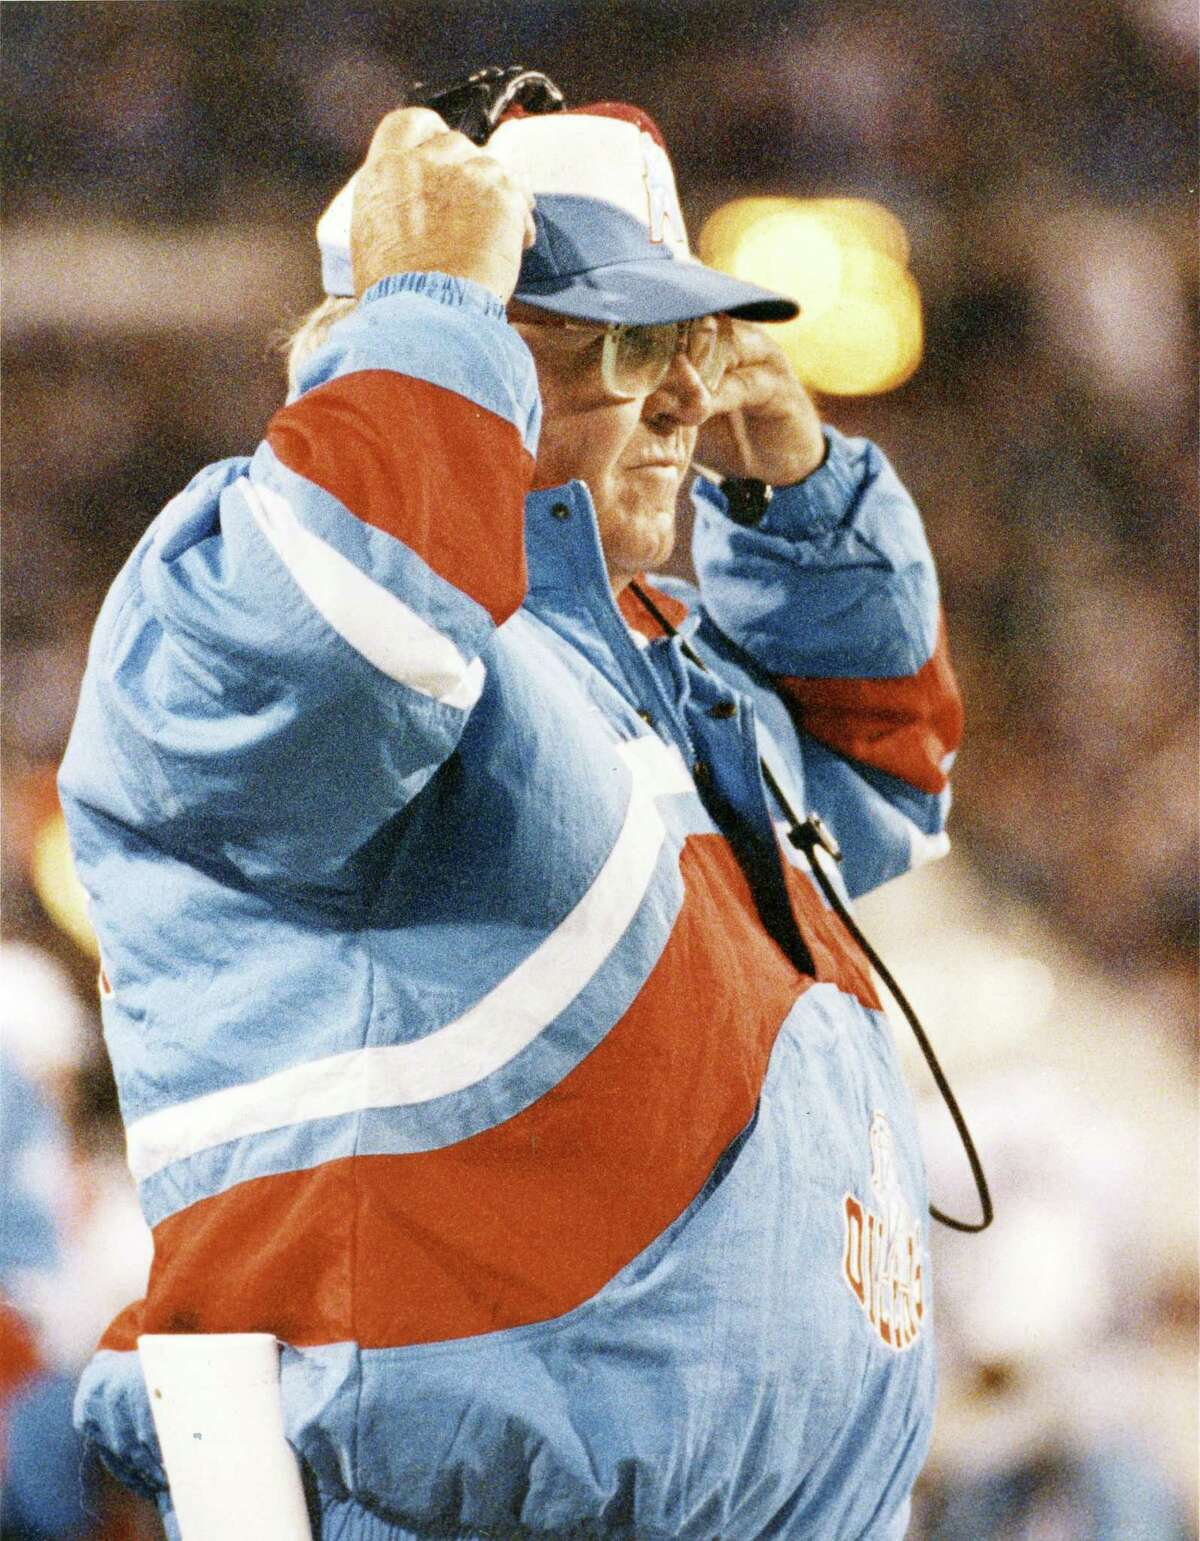 Houston Oilers defensive coordinator Buddy Ryan on the sidelines during game an October 1993 game against the Buffalo Bills.